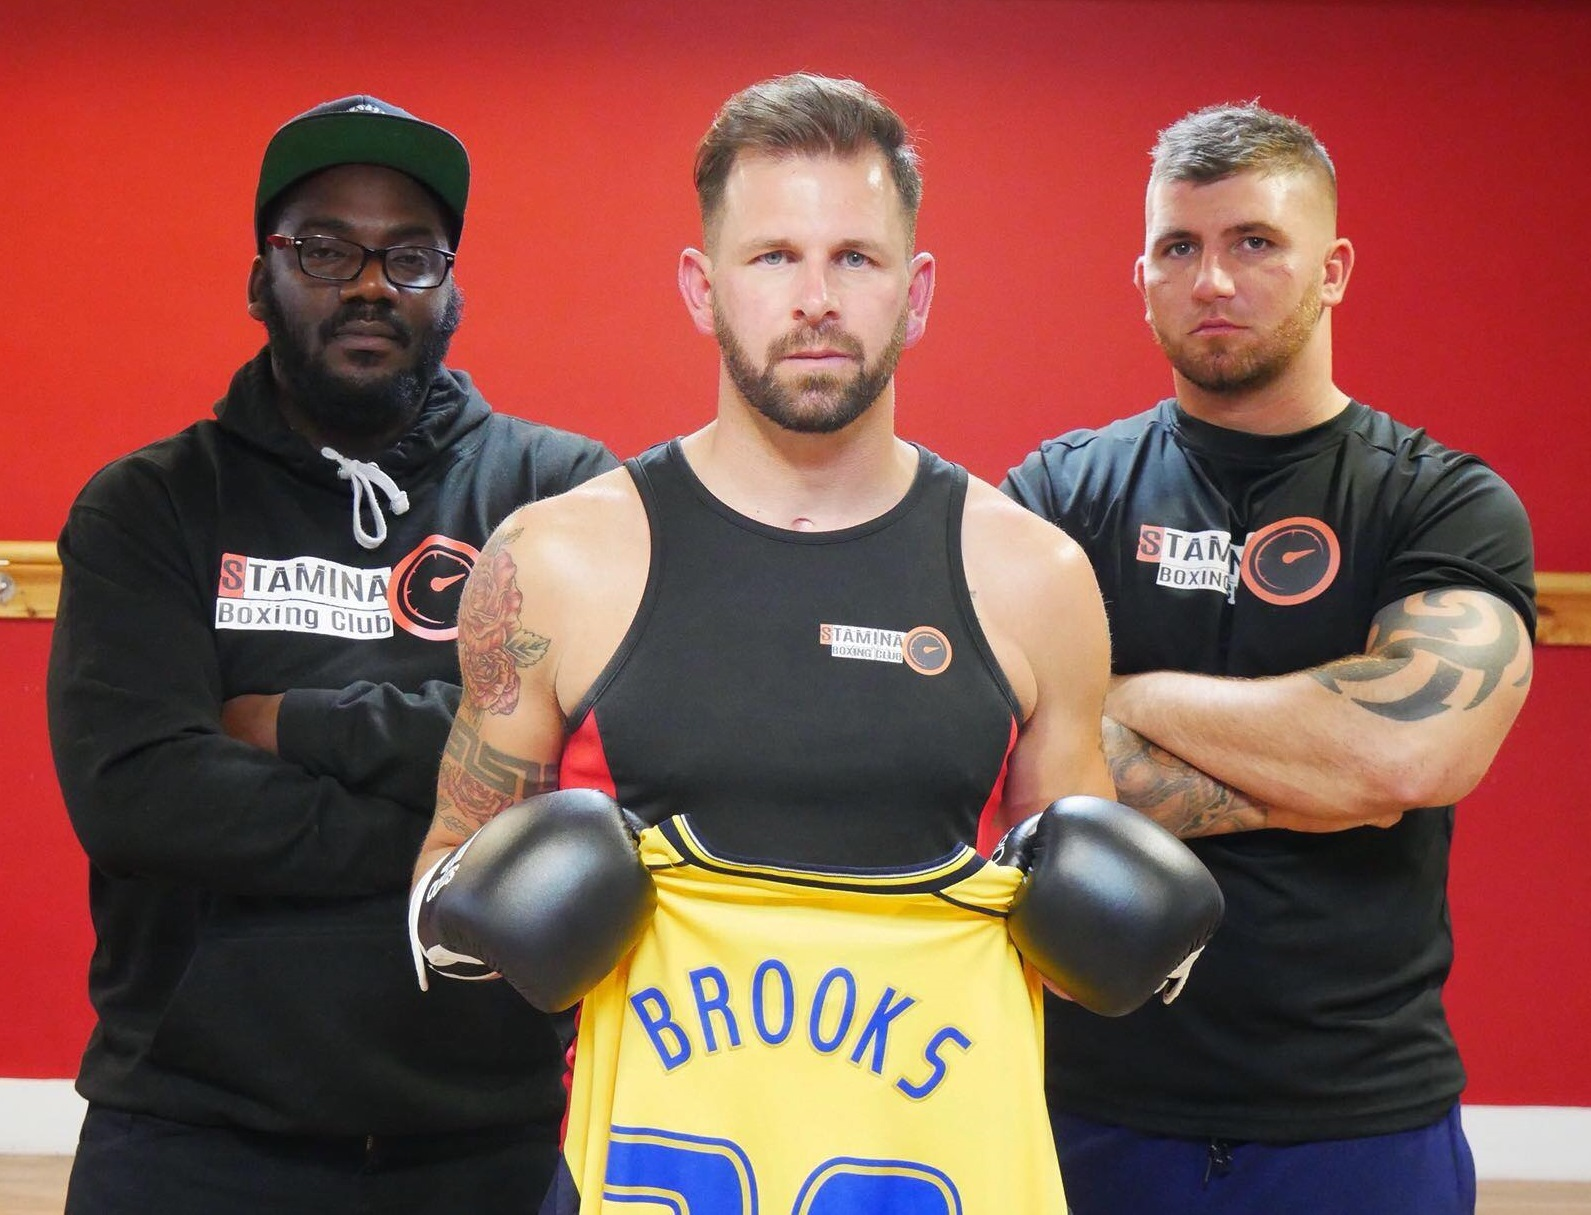 TOUGH CHALLENGE: Former Oxford United striker Jamie Brooks with Adrian Prescott (left) and Kieran Davis from the Stamina Boxing Club, who are helping him ahead of his one-off fight